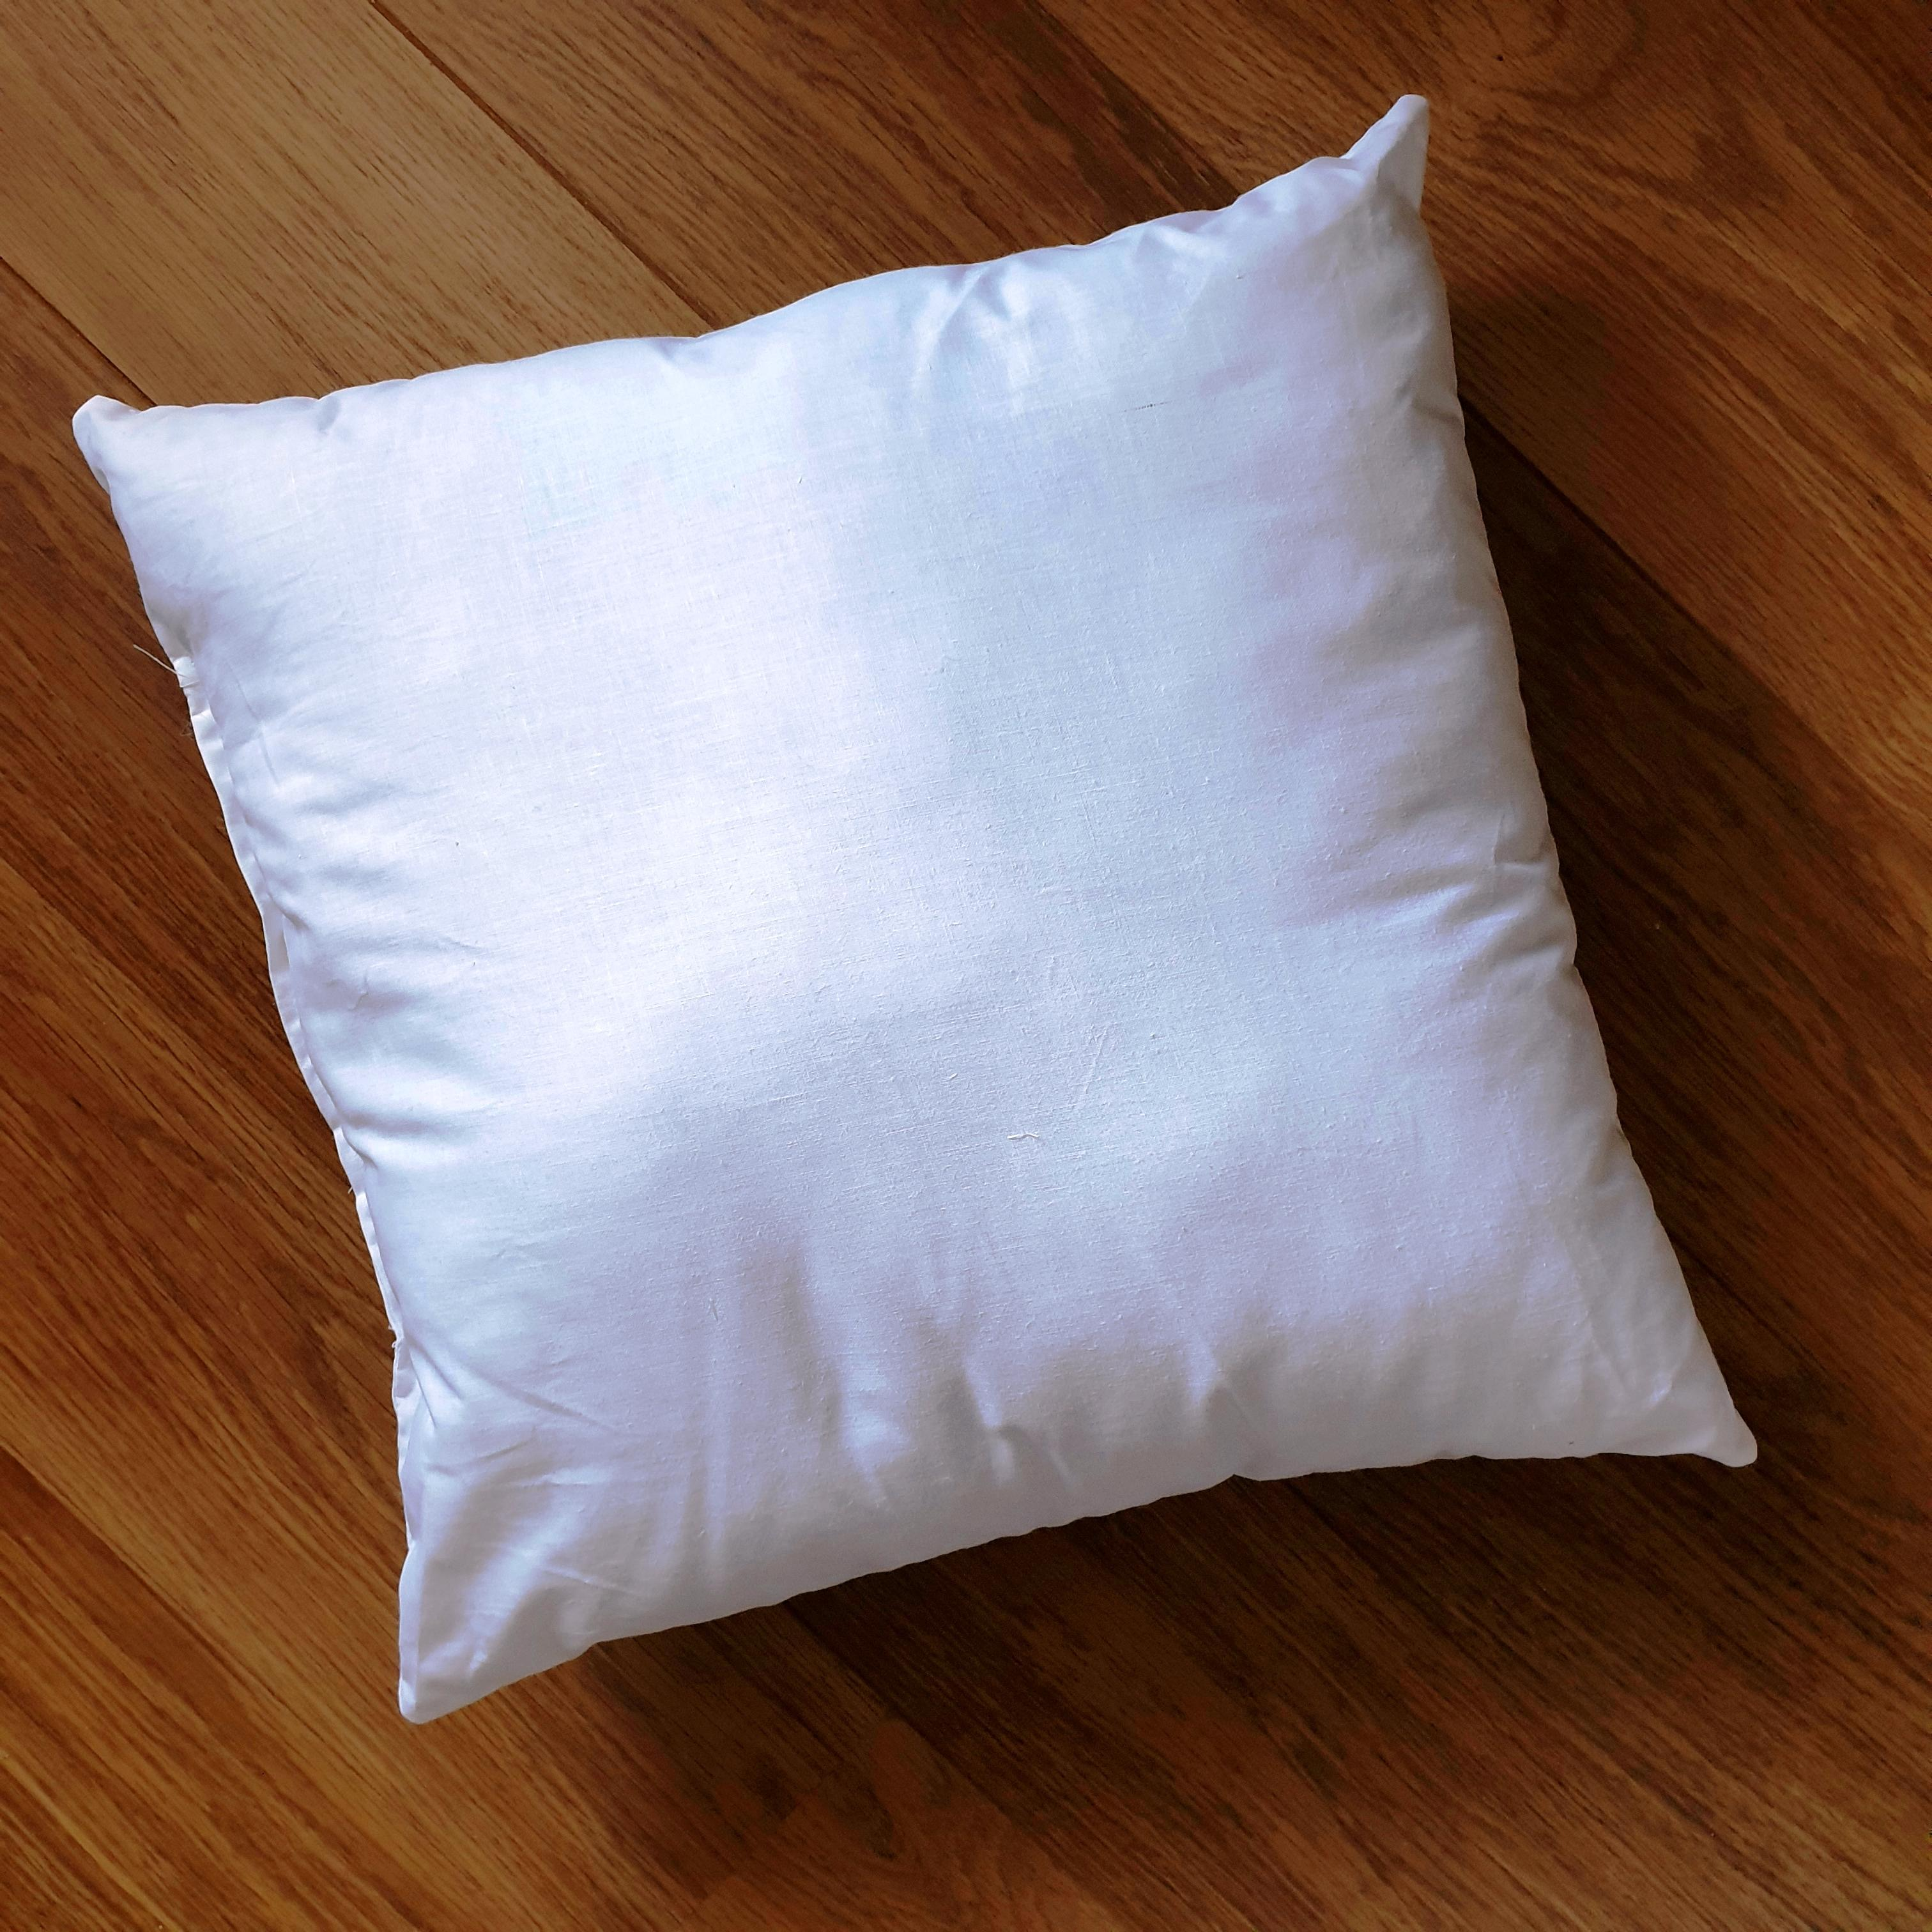 50cm cushion inner pad generously filled with Eco-Hollowfibre made from recycled plastic bottles in white poly cotton outer cover.